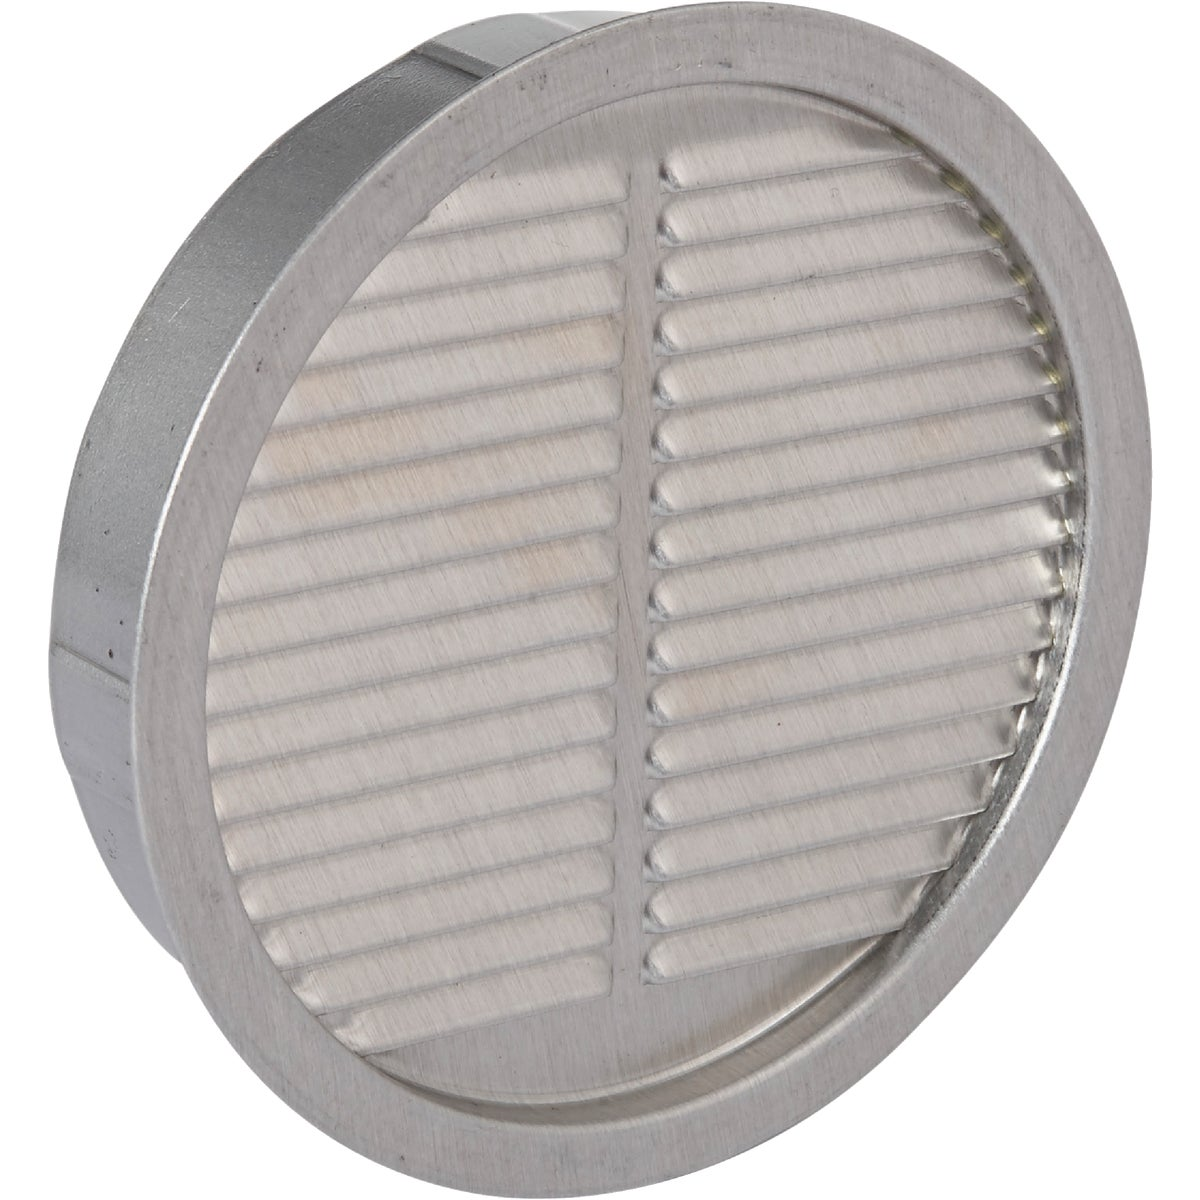 "4"" MILL MINI ALUM LOUVER - 50003 by Air Vent Inc"